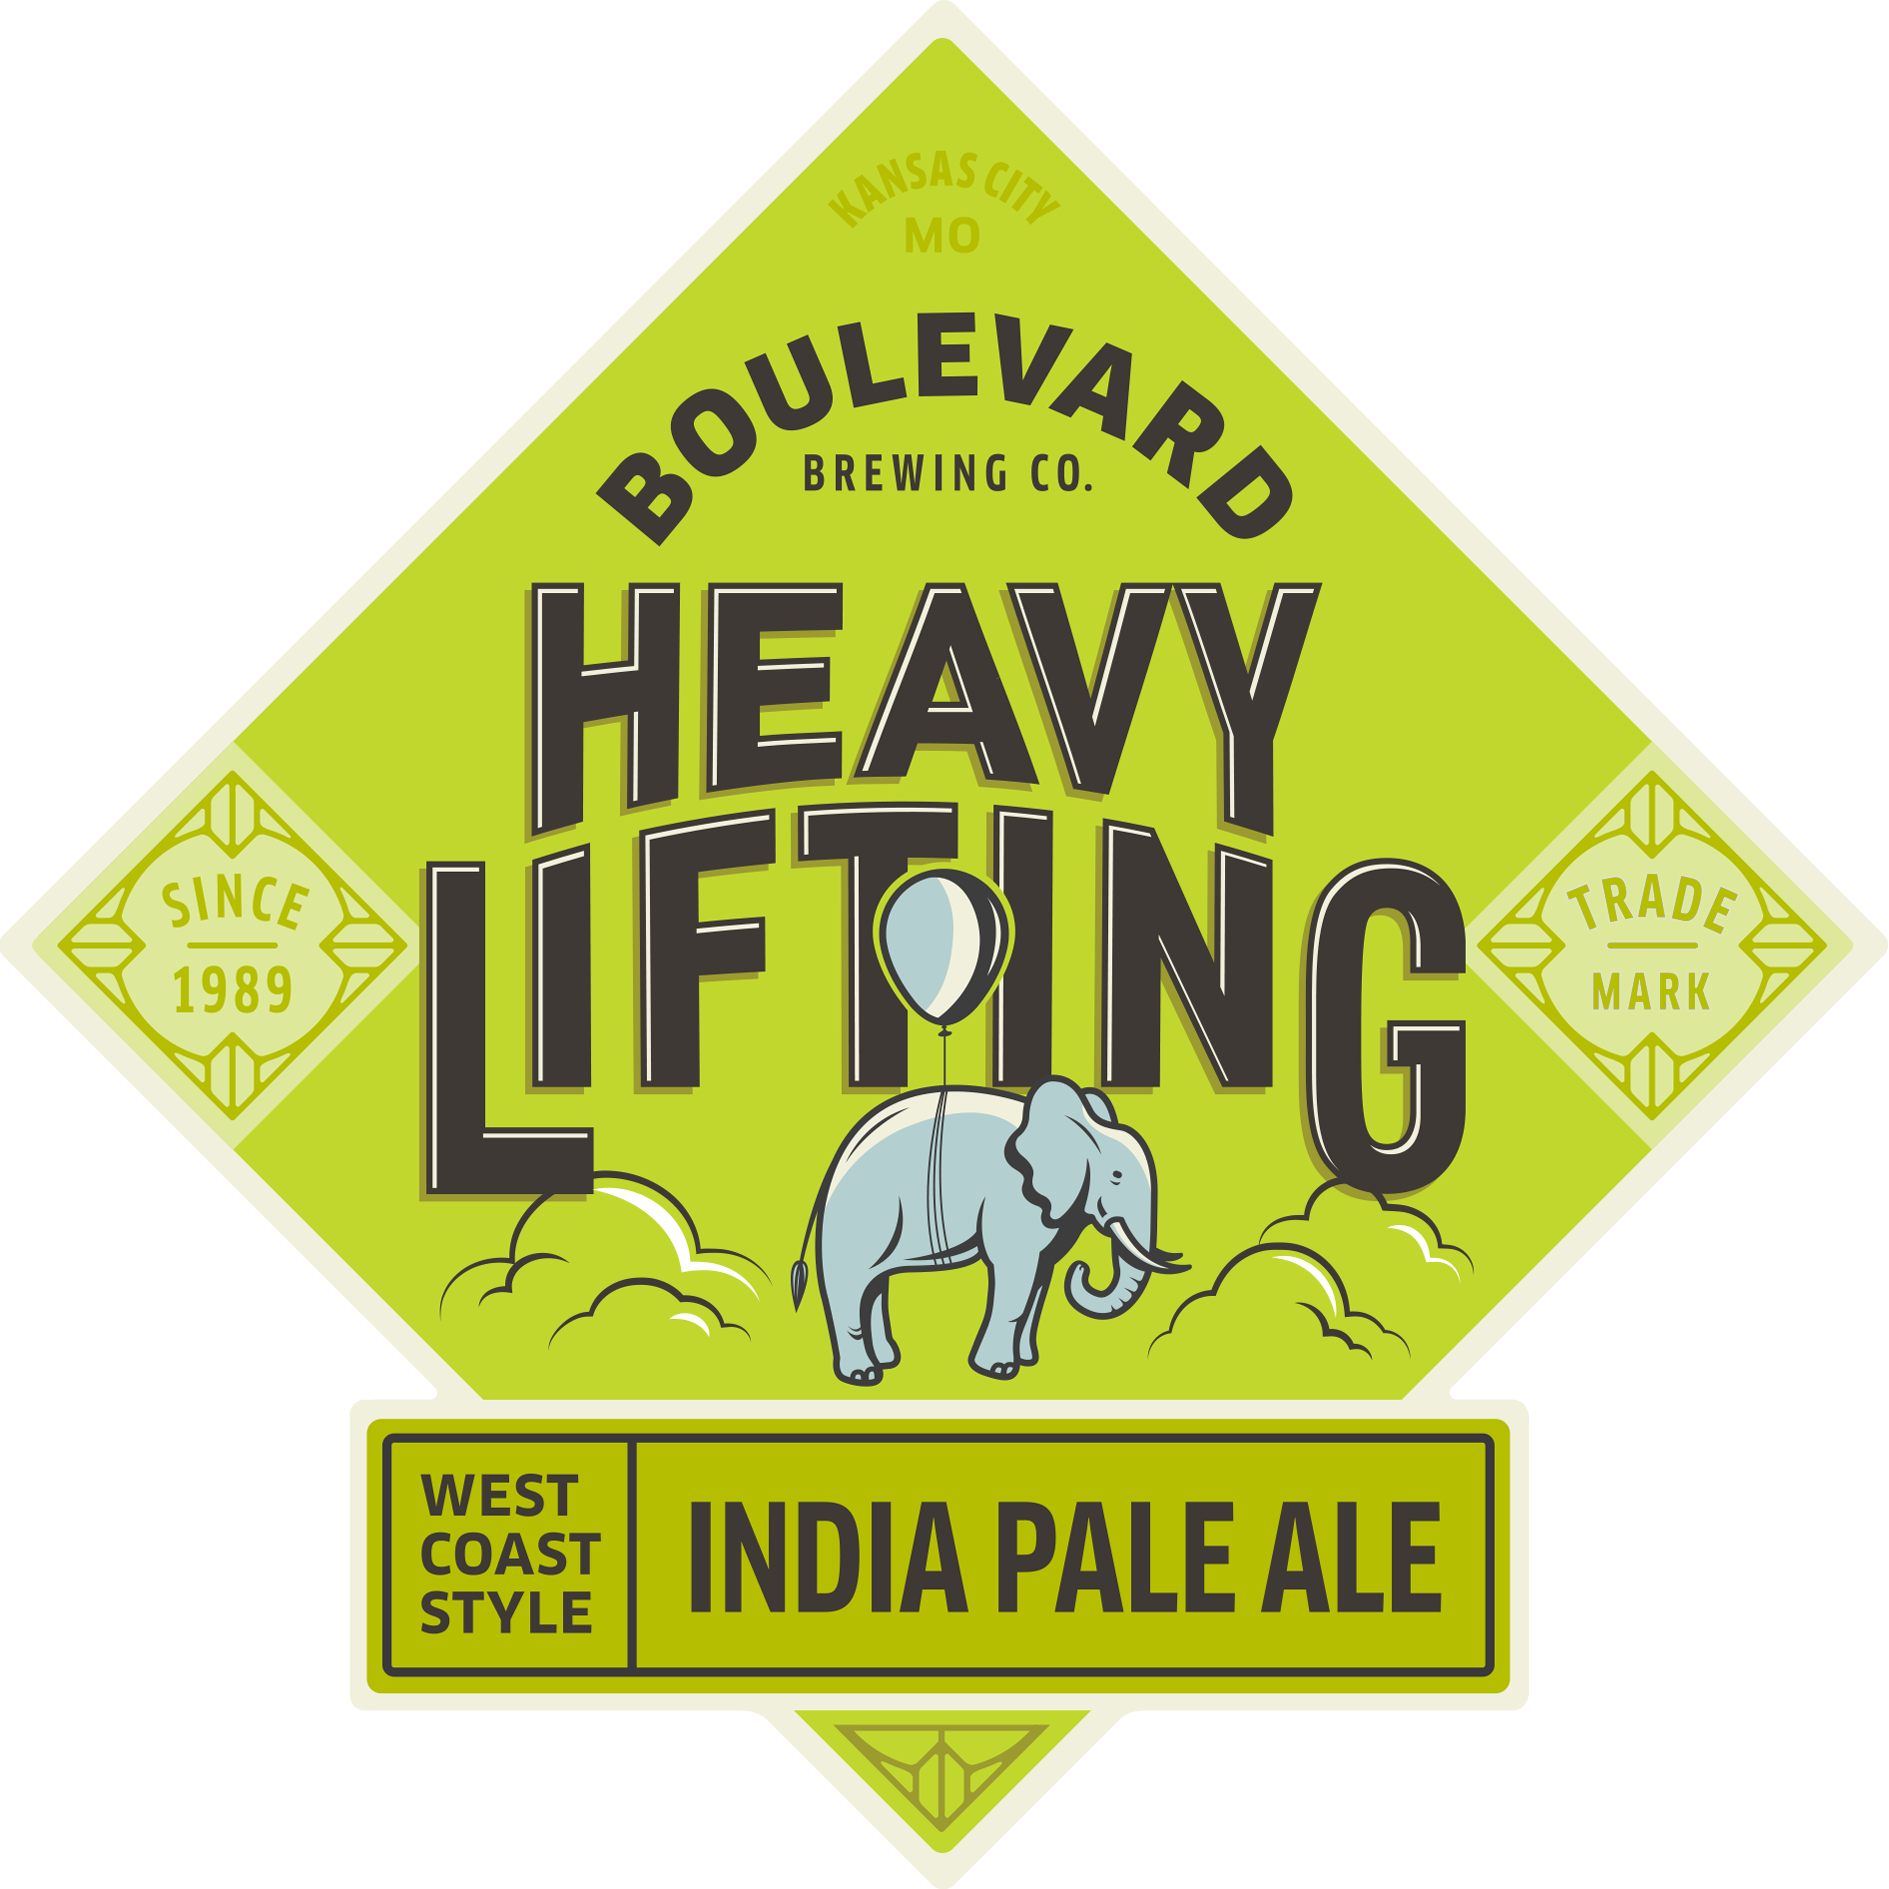 Heavy Lifting IPA